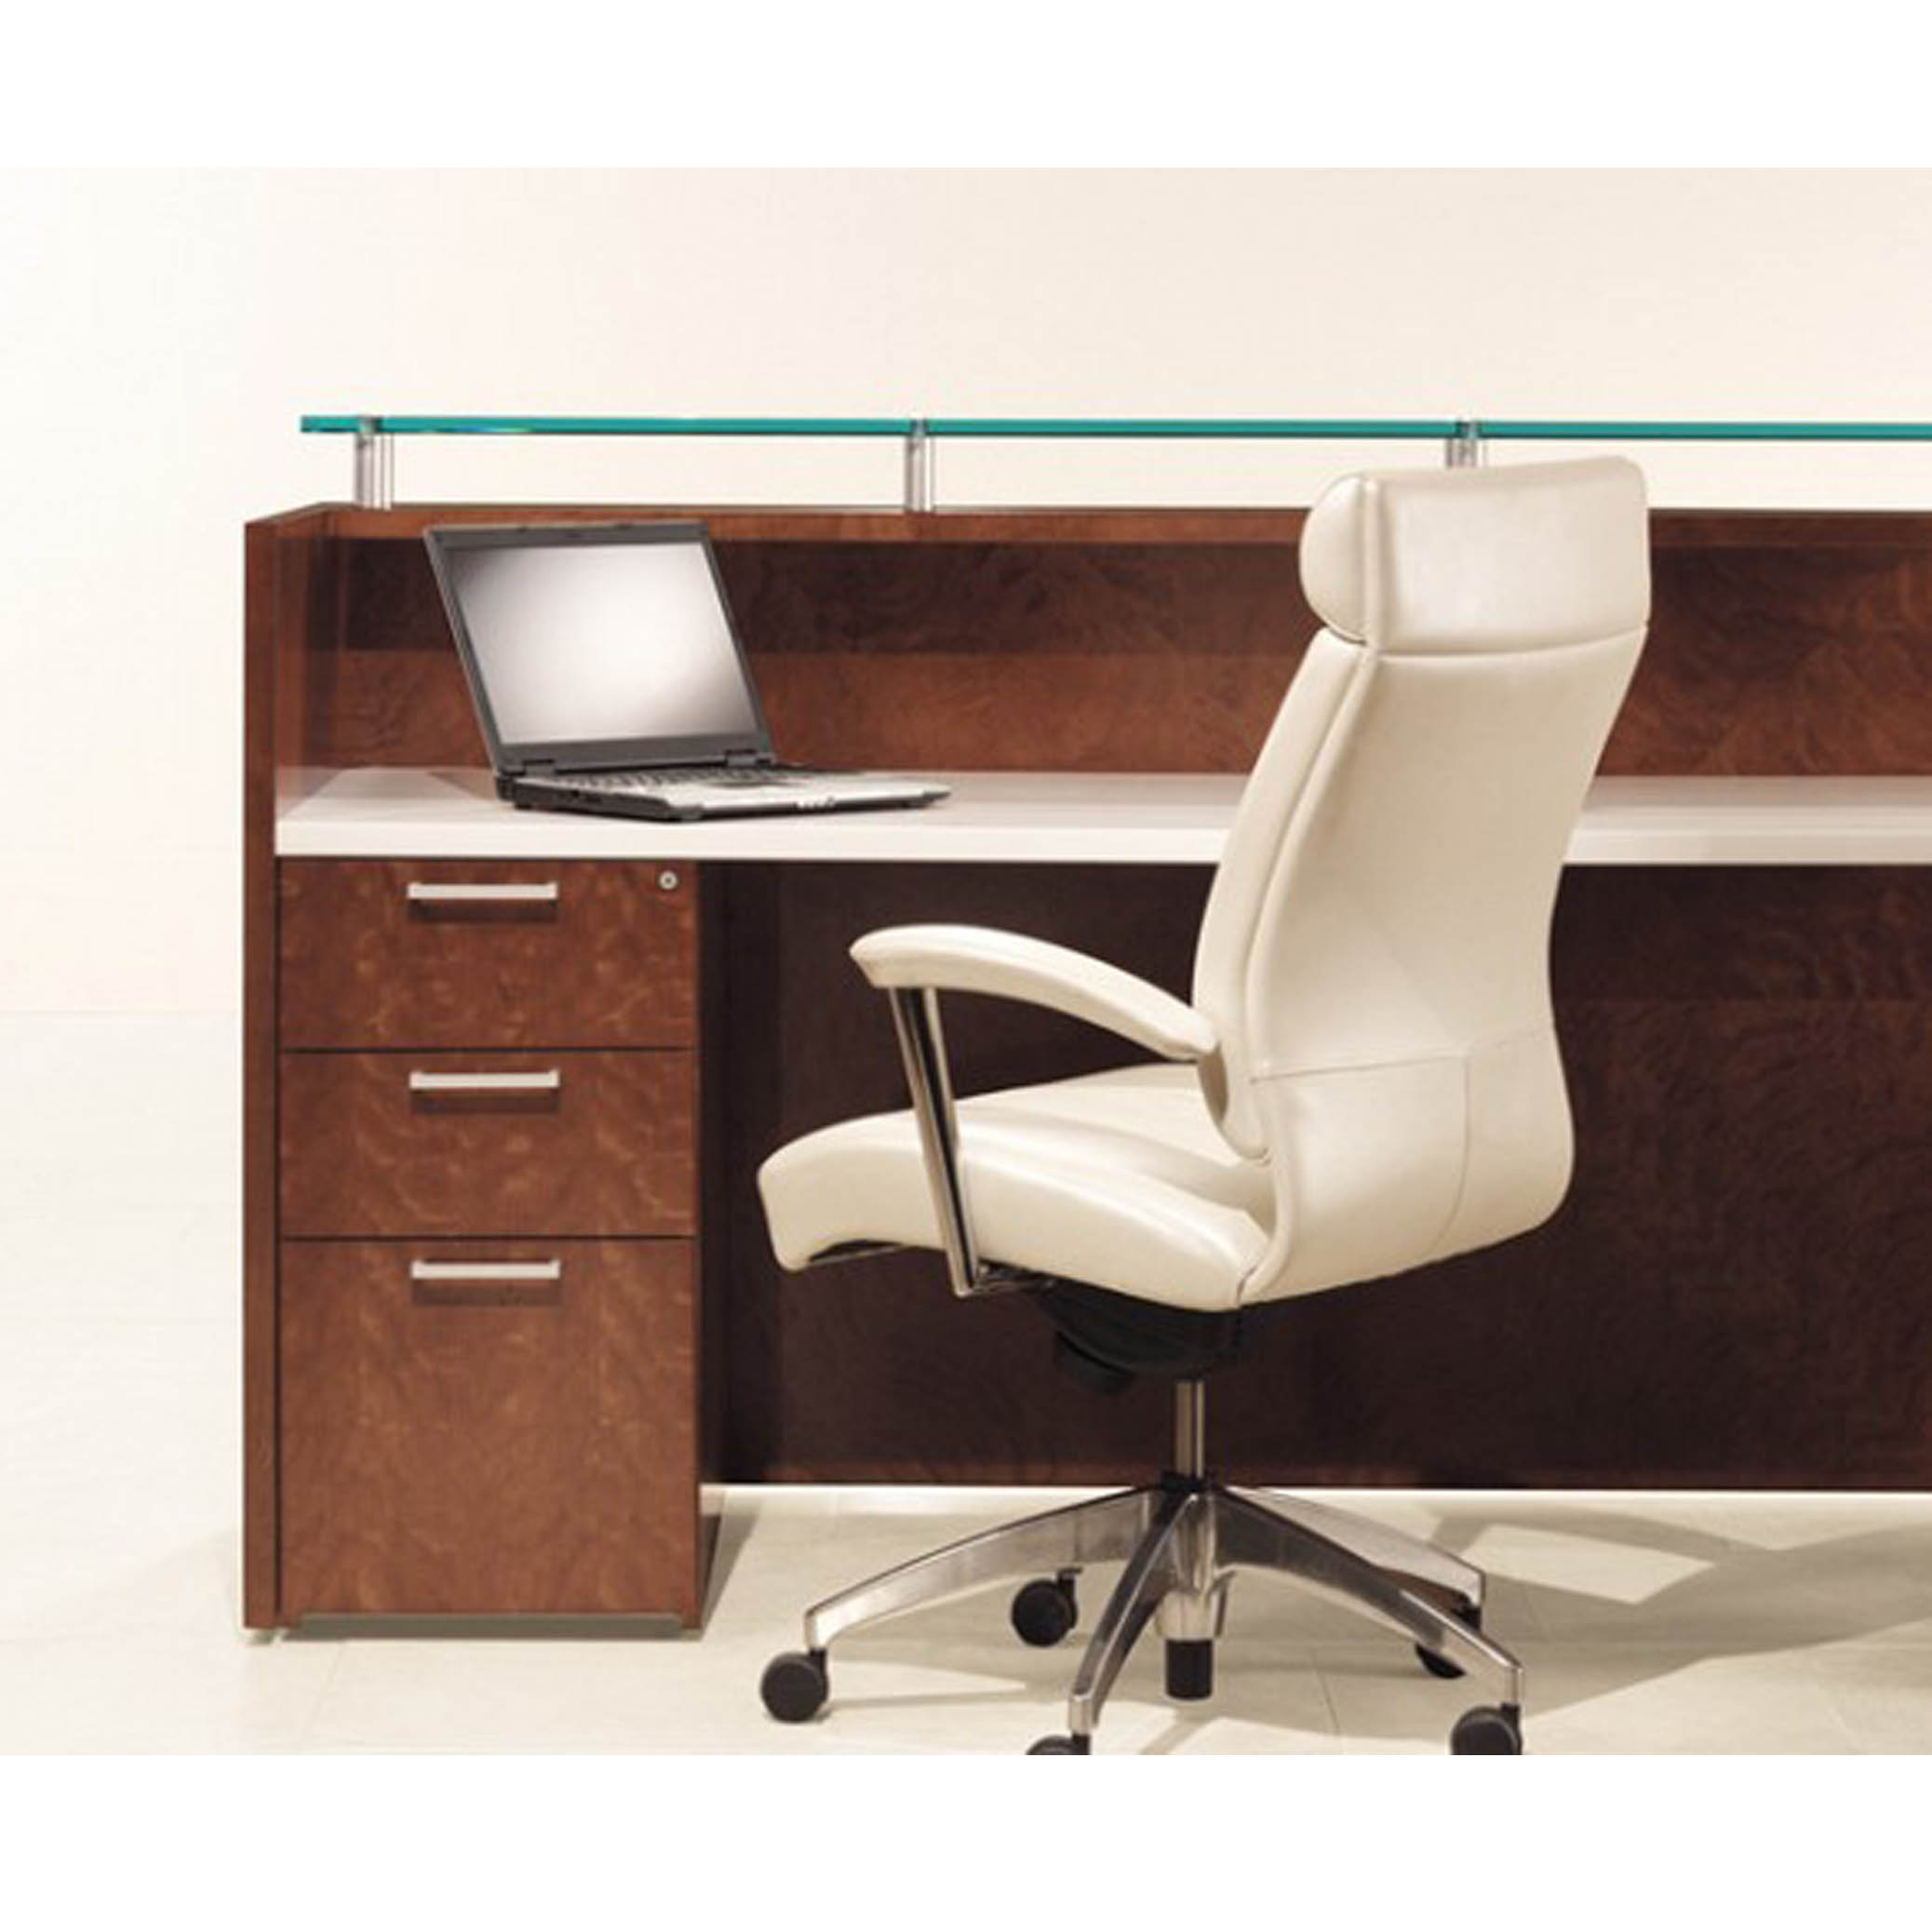 Used Office Furniture Ta Stylish Used Office Furniture Richmond Va Construction